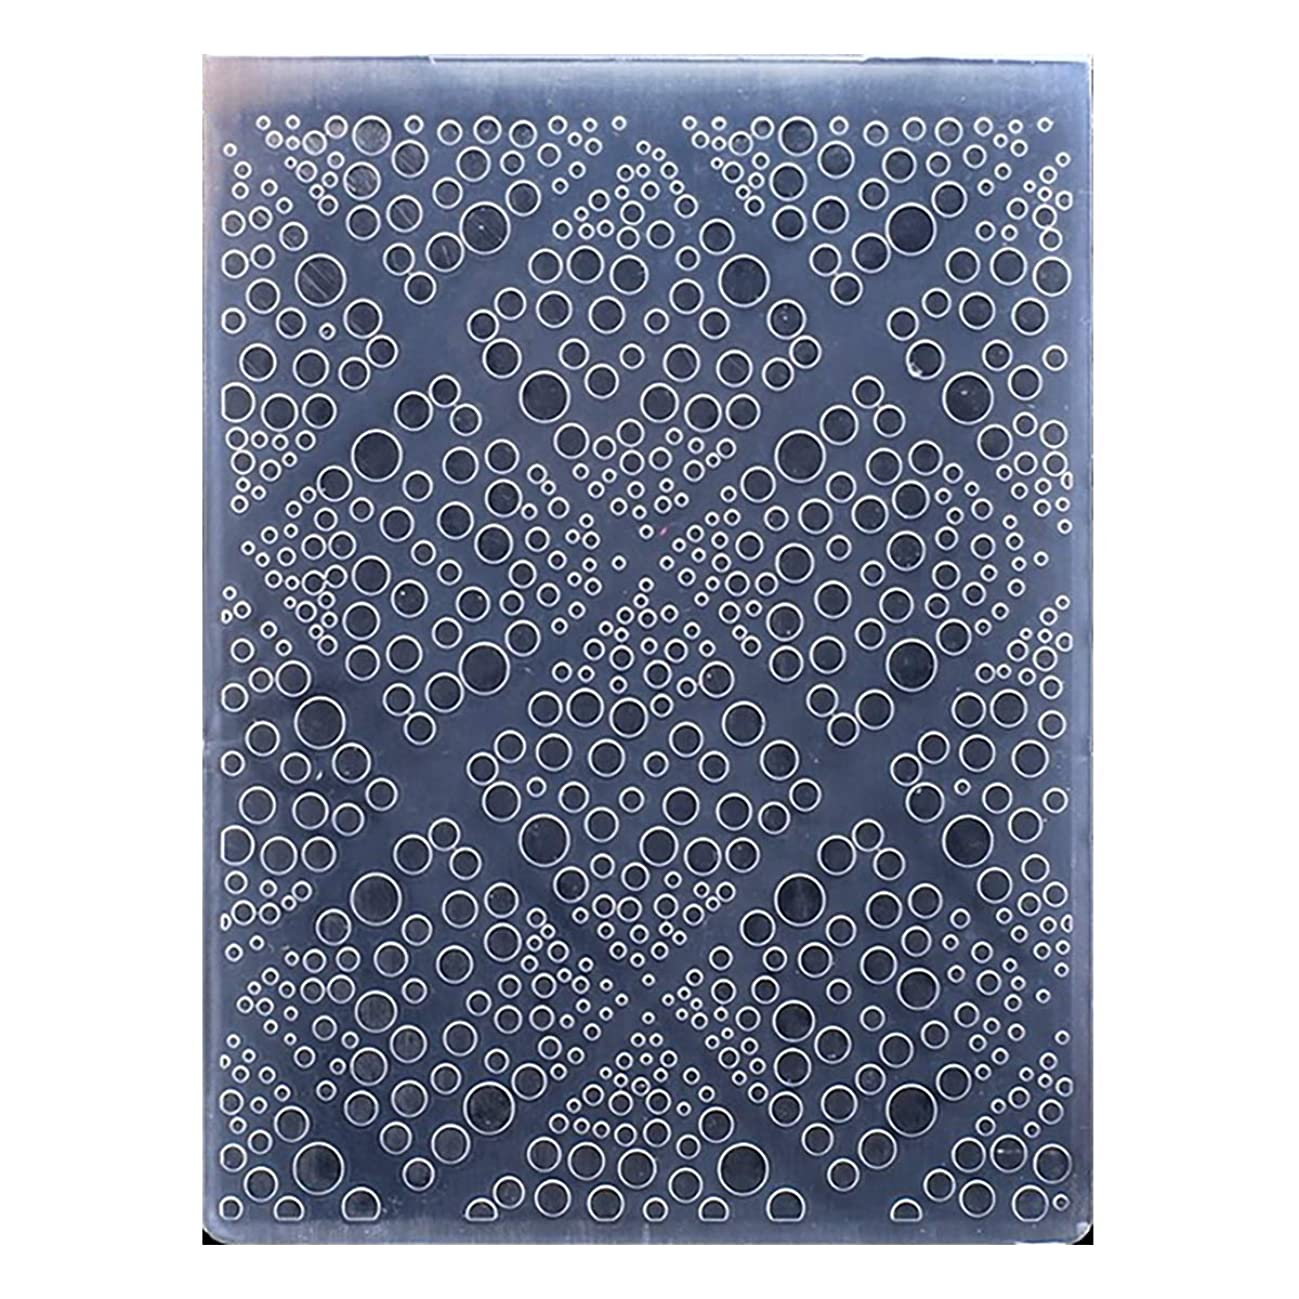 Kwan Crafts Diamond Bubble Plastic Embossing Folders for Card Making Scrapbooking and Other Paper Crafts, 10.5x14.5cm